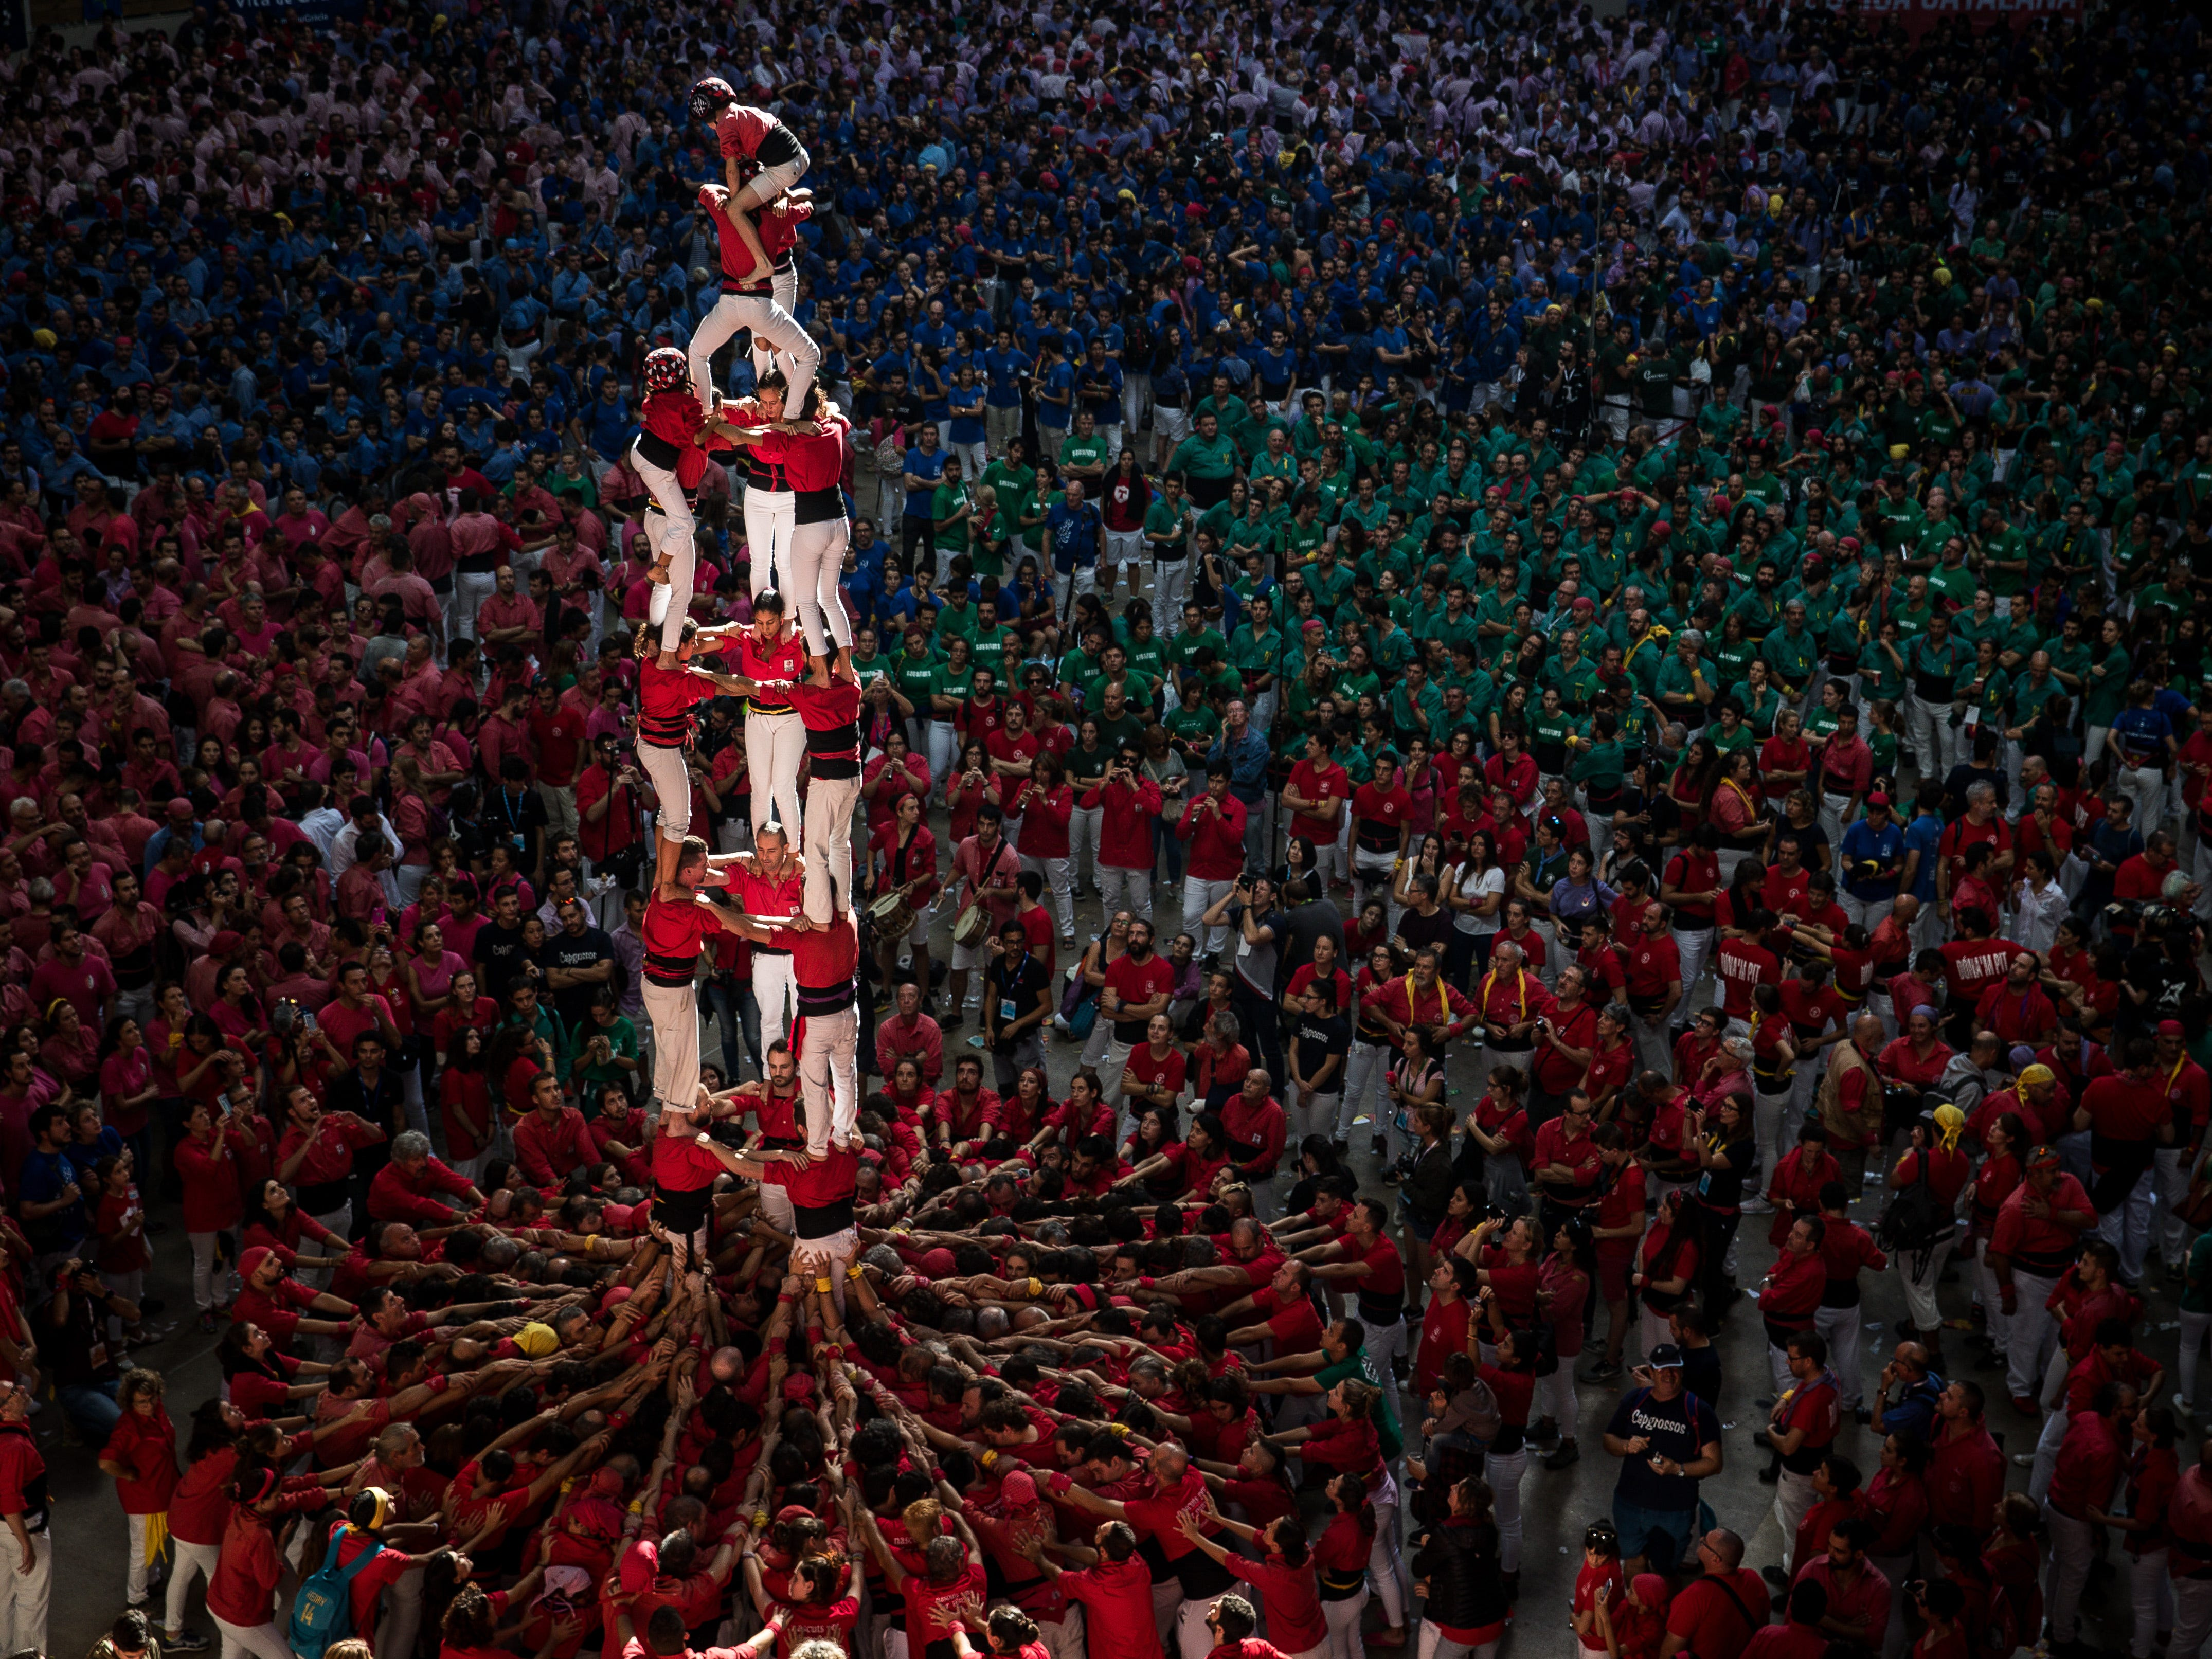 Members of the C. de Barcellona built a human tower during the 27th Tarragona Competition on October 07, 2018 in Tarragona, Spain. The 'Castellers' who build the human towers with precise techniques compete in groups, know as 'colles', aiming to build the highest and most complex human tower. The Catalan tradition is believed to have originated from human towers built at the end of the 18th century by dance groups.